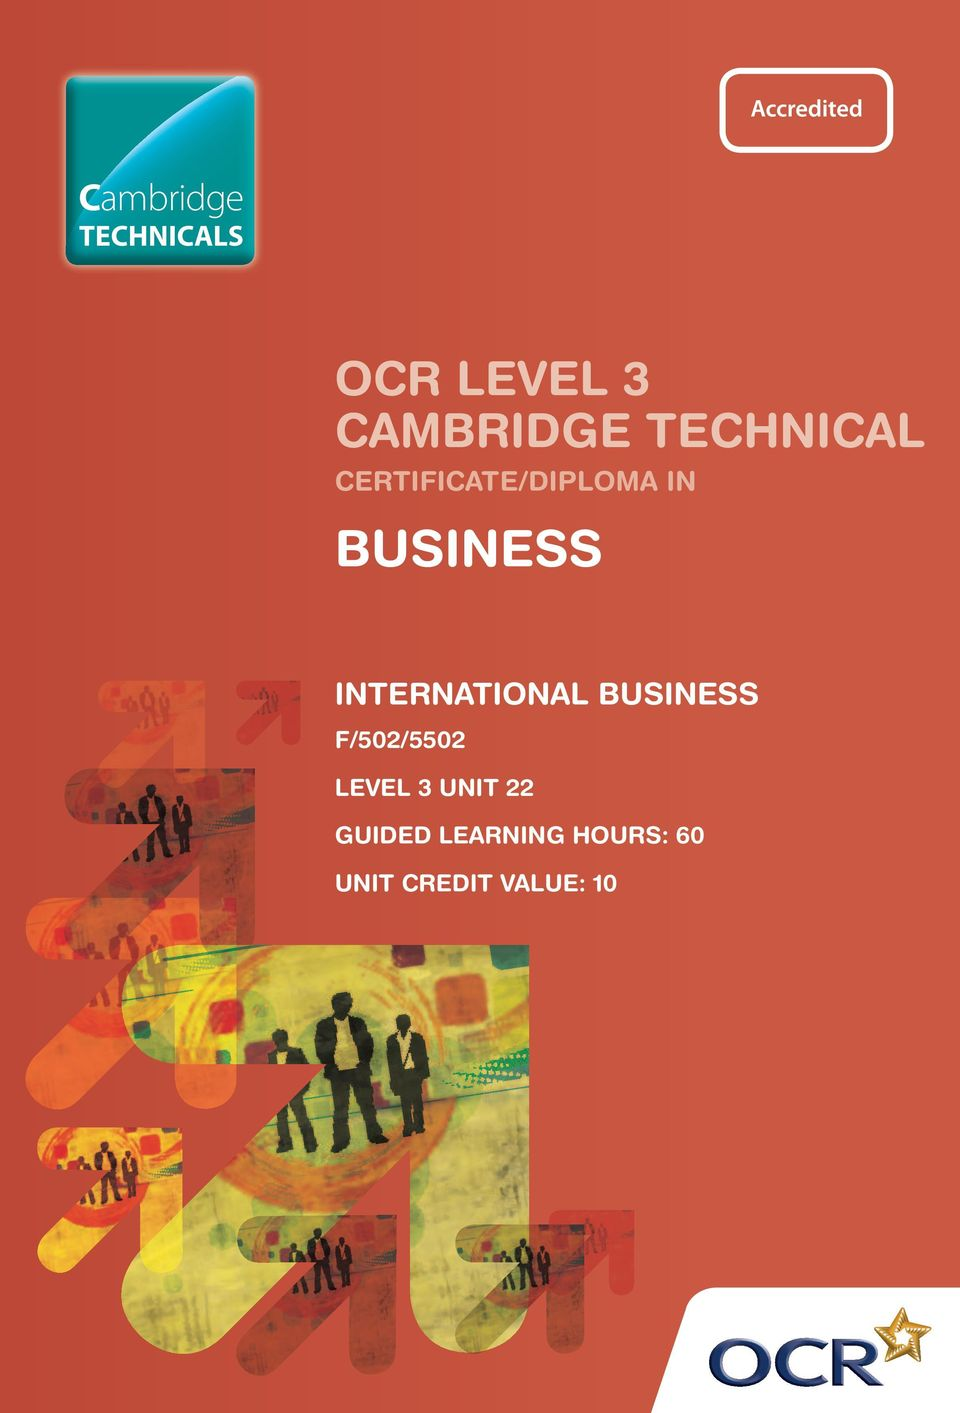 INTERNATIONAL BUSINESS F/502/5502 LEVEL 3